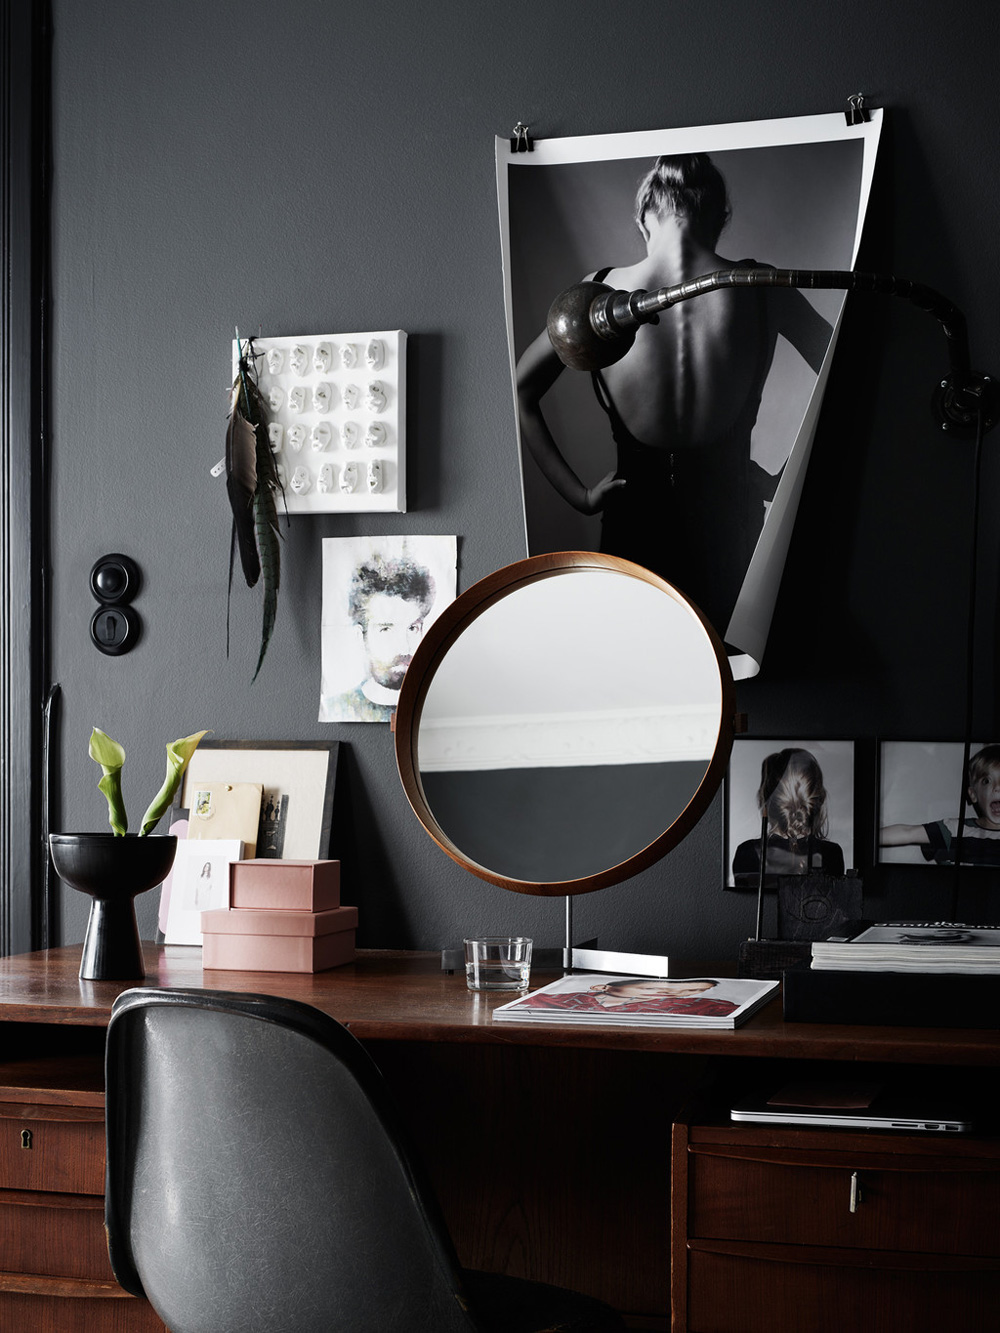 14.Oracle-Fox-Sunday-Sanctuary-The-Darker-Side-Navy-and-White-Scandinavian-Home-Art-2